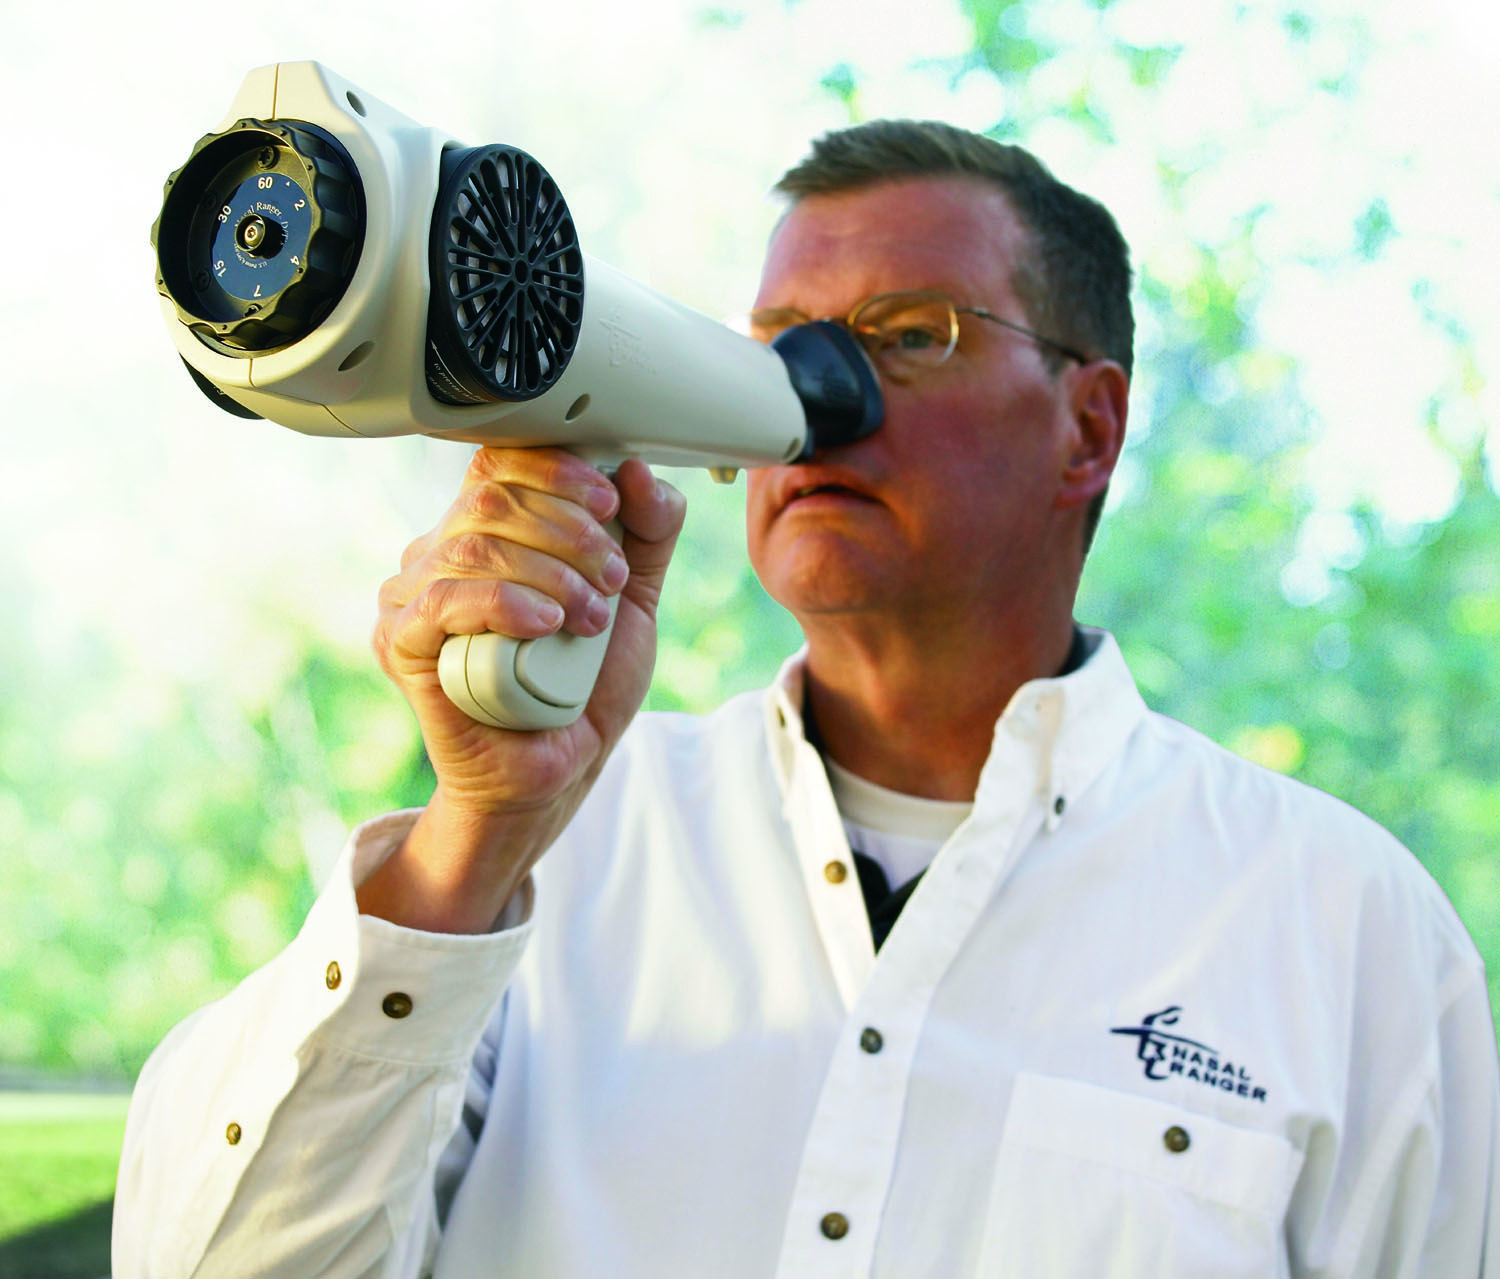 The Nasal Ranger: A Hobbyist Weed Farm's Worst Enemy